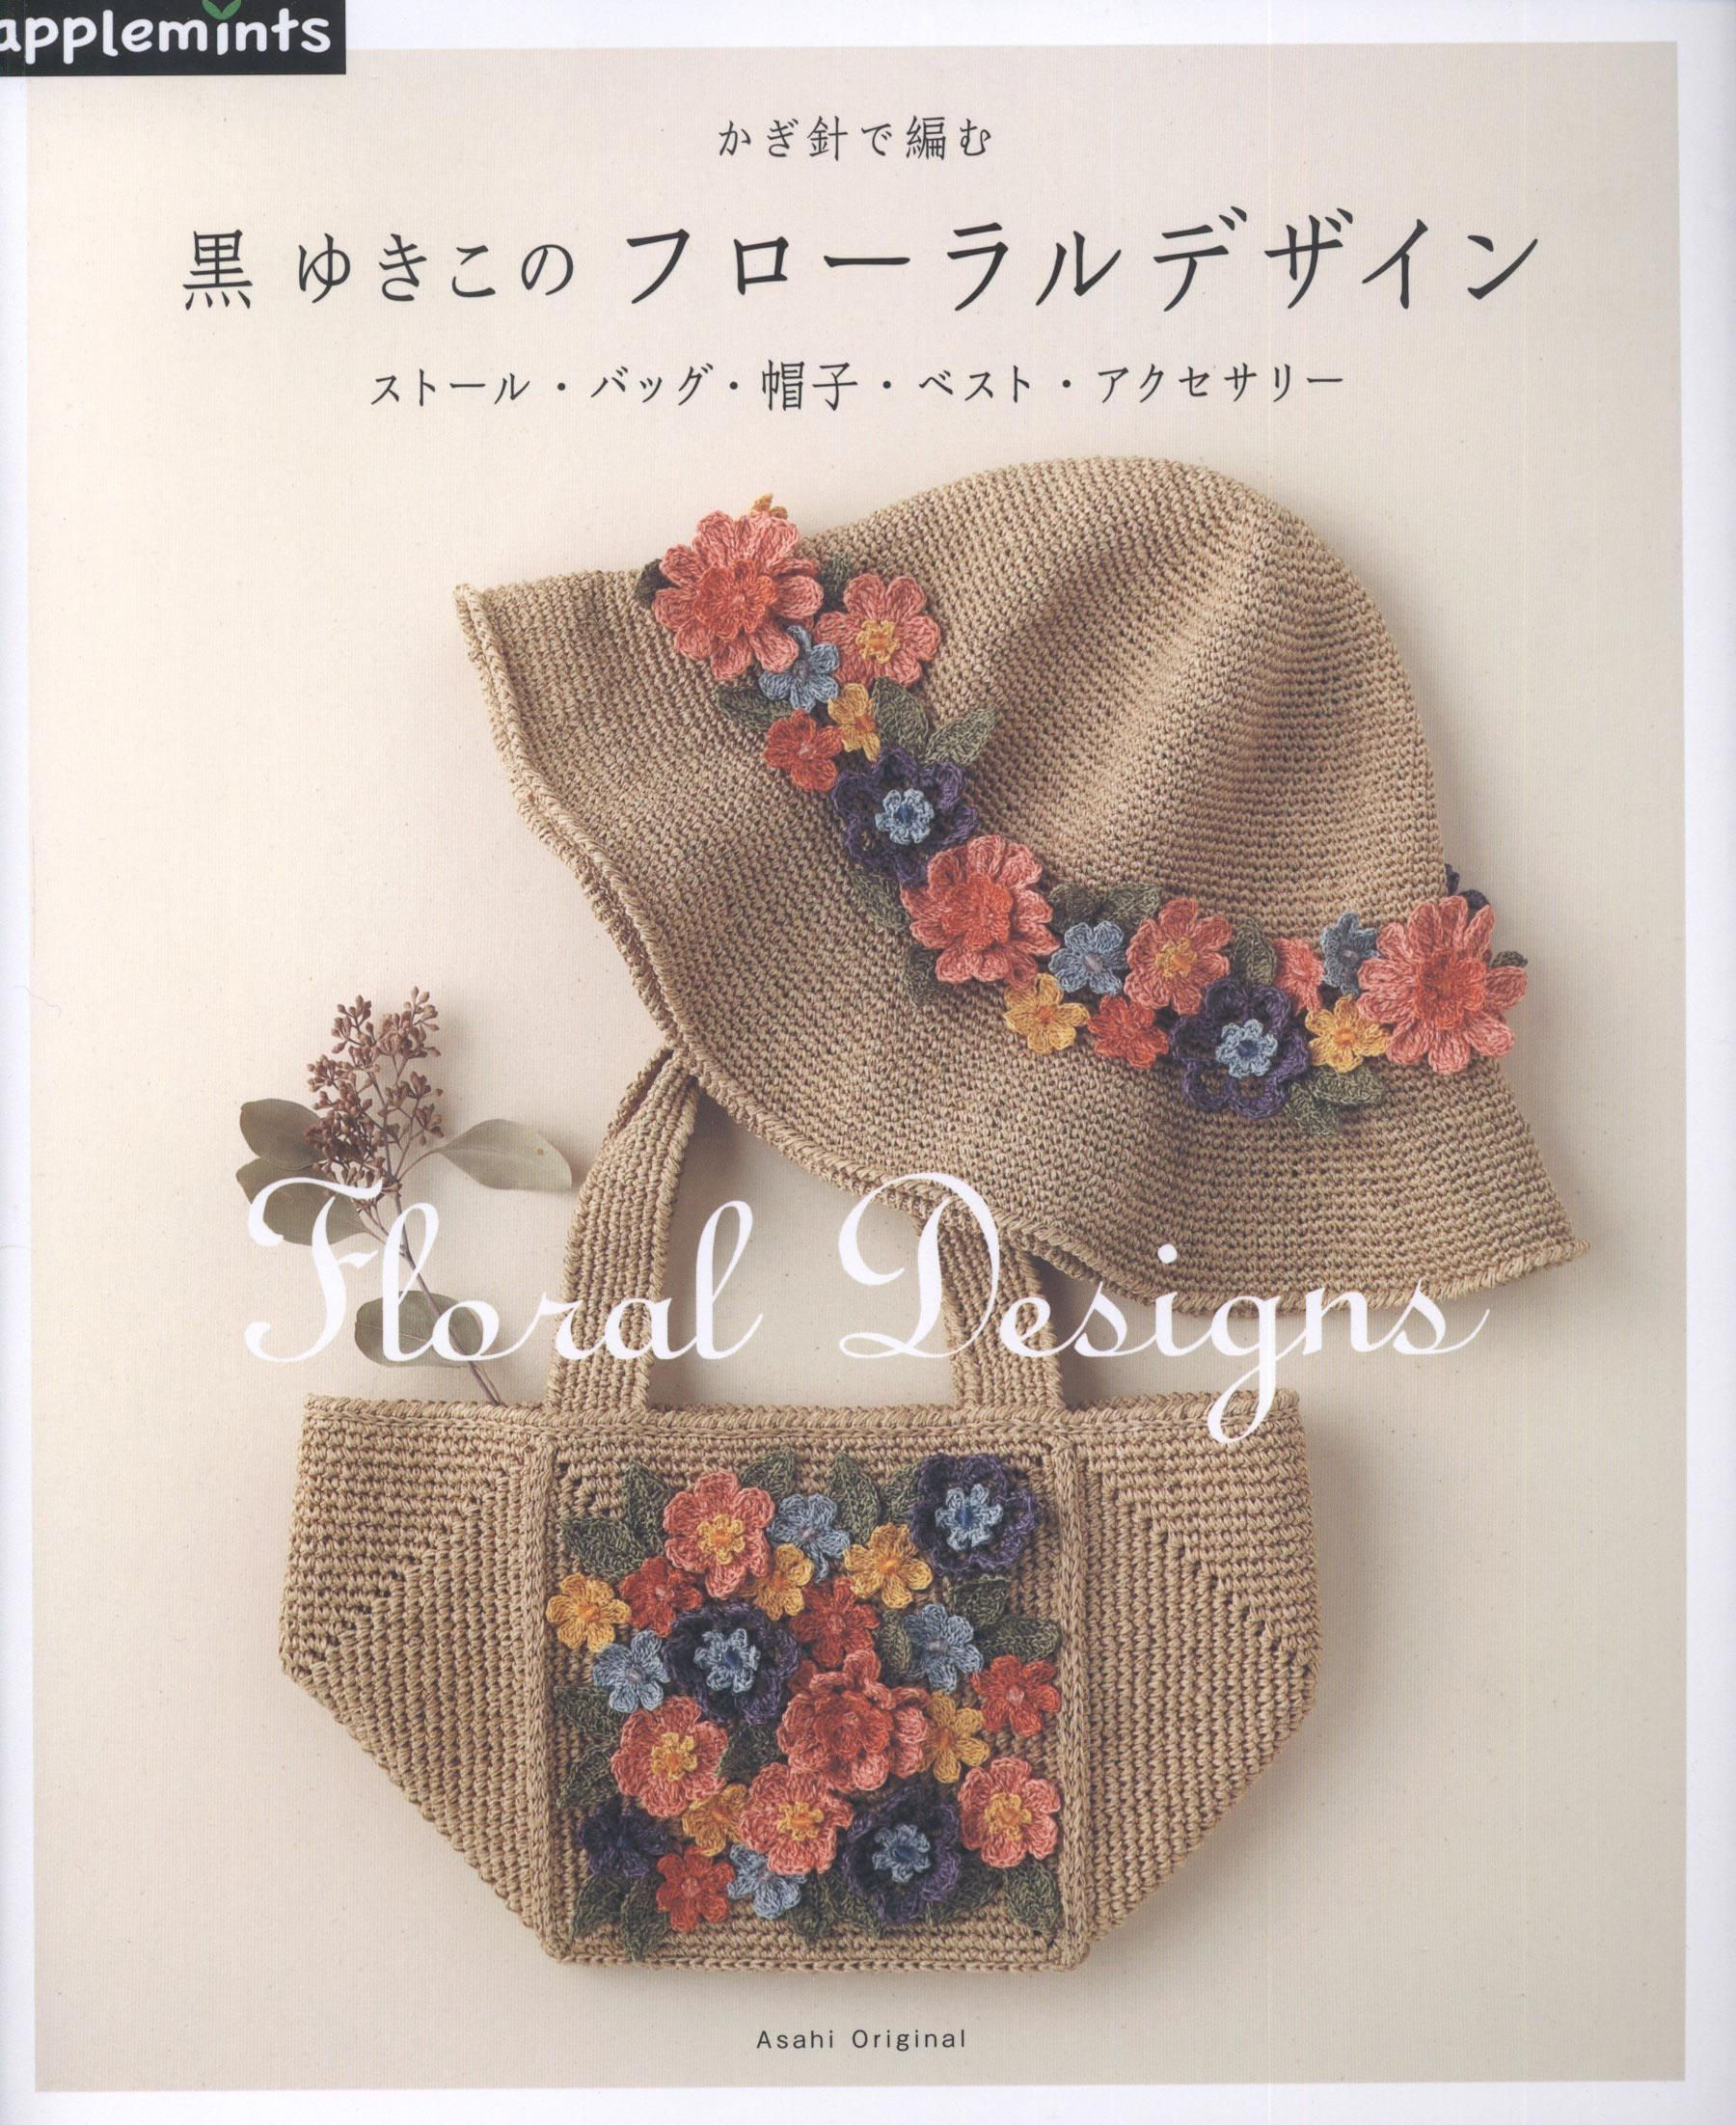 Yukiko Kuro Floral Designs Crochet Patterns Japanese Craft Pattern